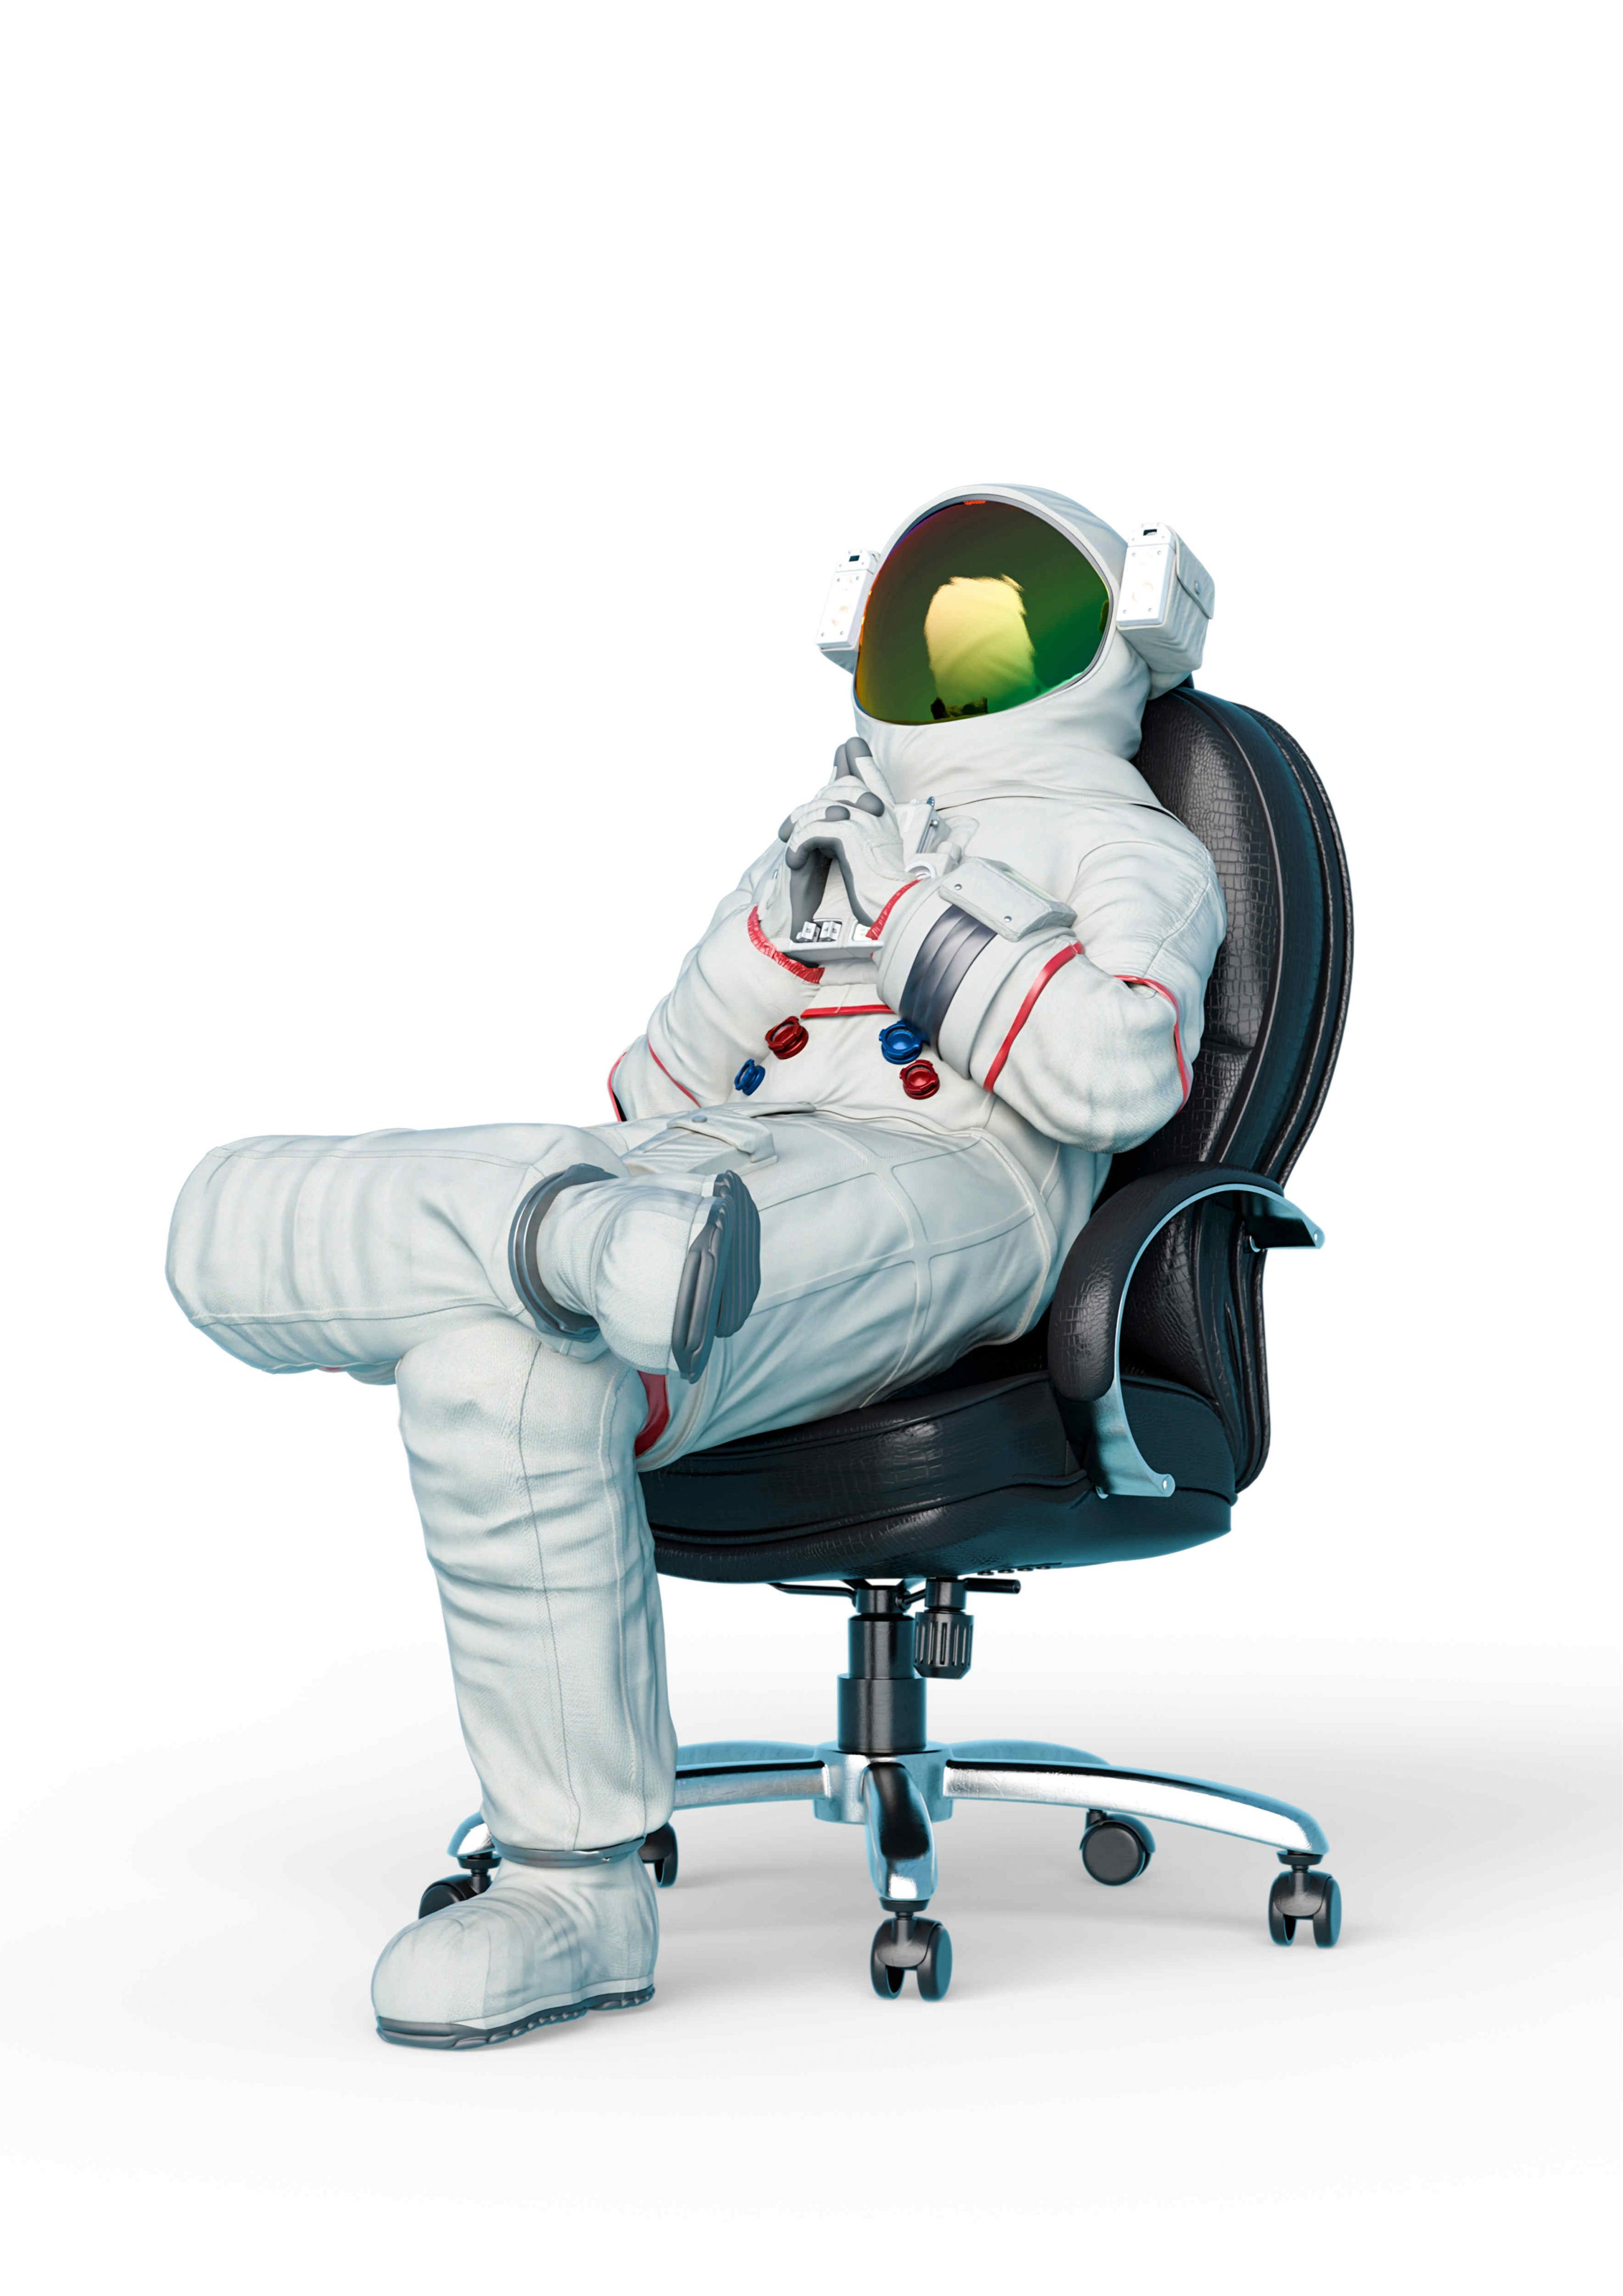 Best-astro-chairs-astro-buying-guide